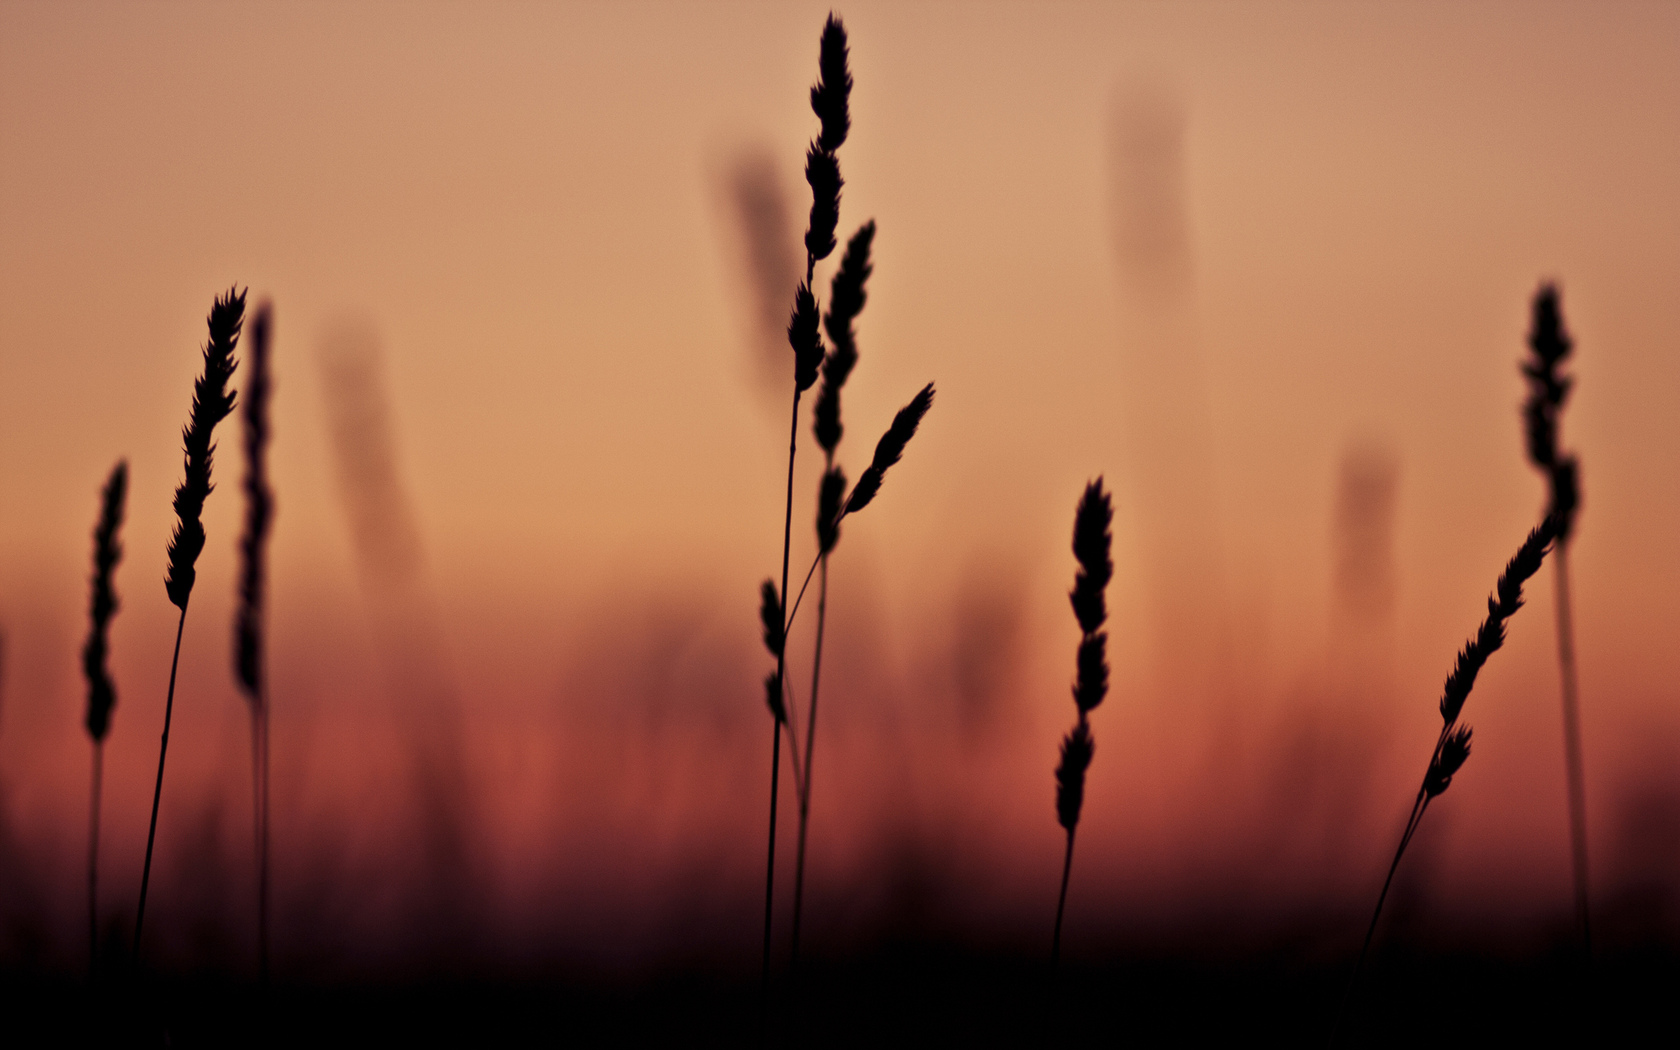 grass, focus, sunset, фокус, macro, 2560x1600, макро, трава, shadow, тень, закат